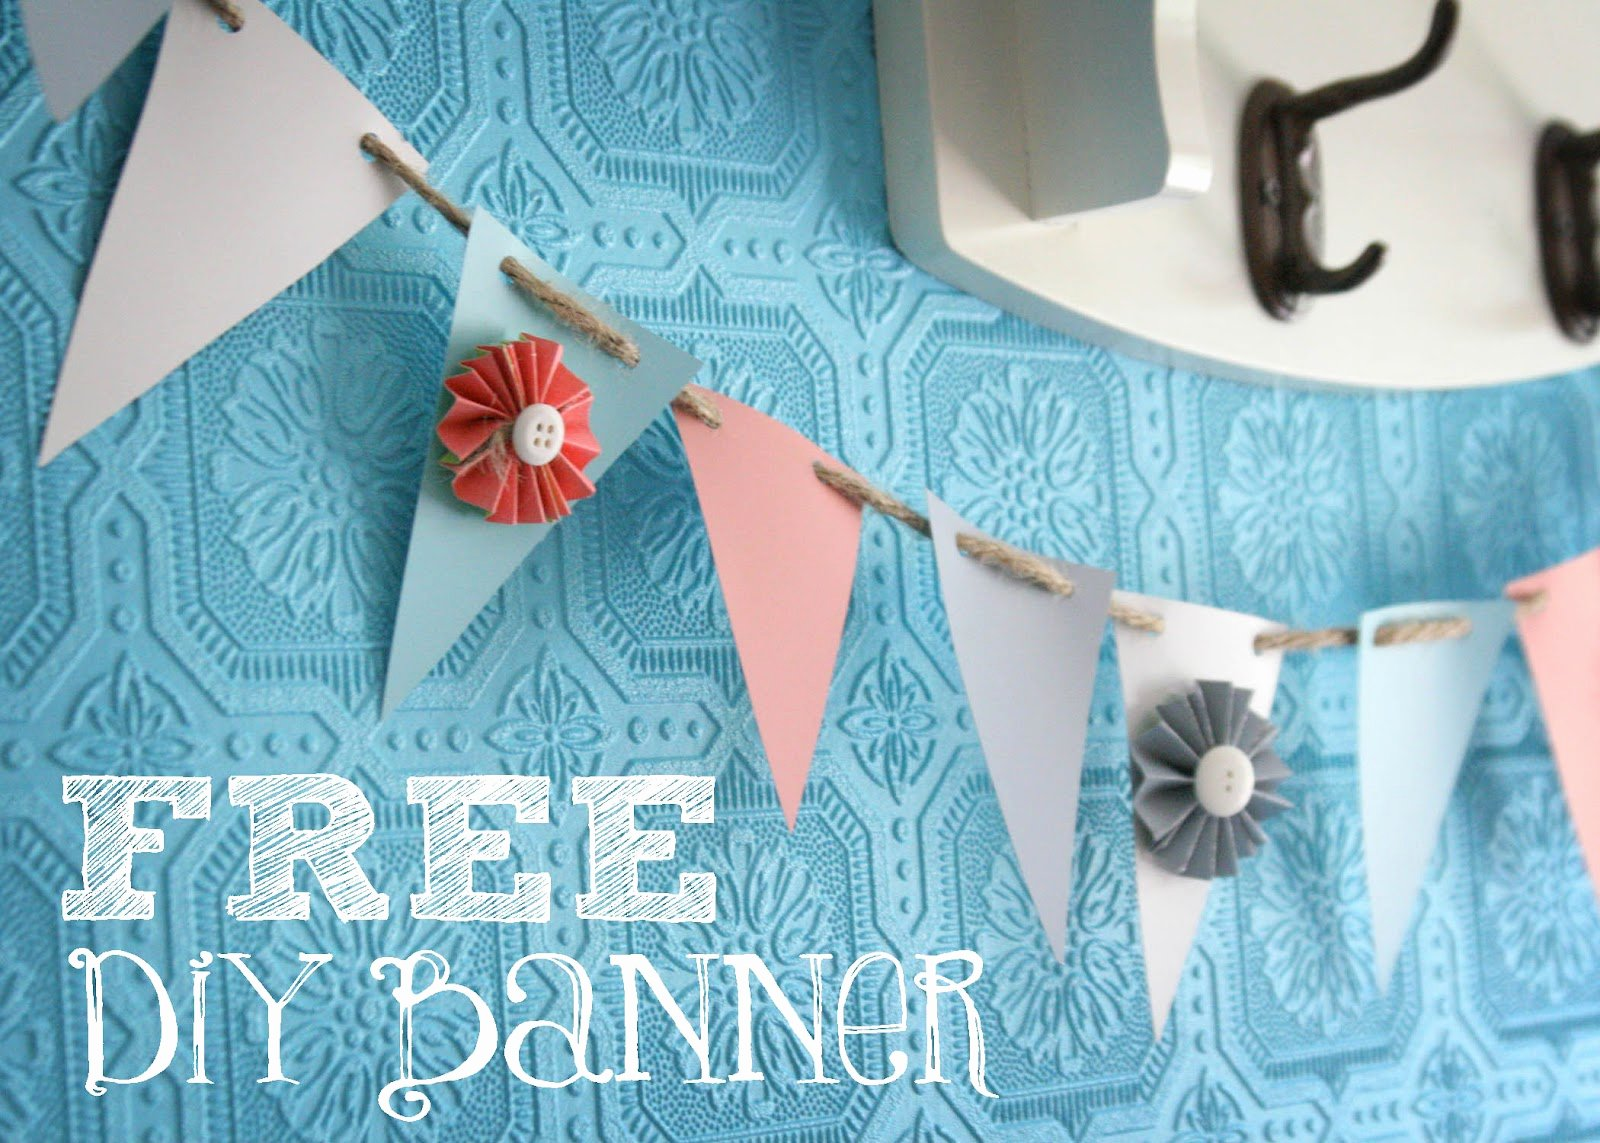 Diy Baby Shower Banner Template Lovely Mrs This and that Baby Shower Banner Free Downloads